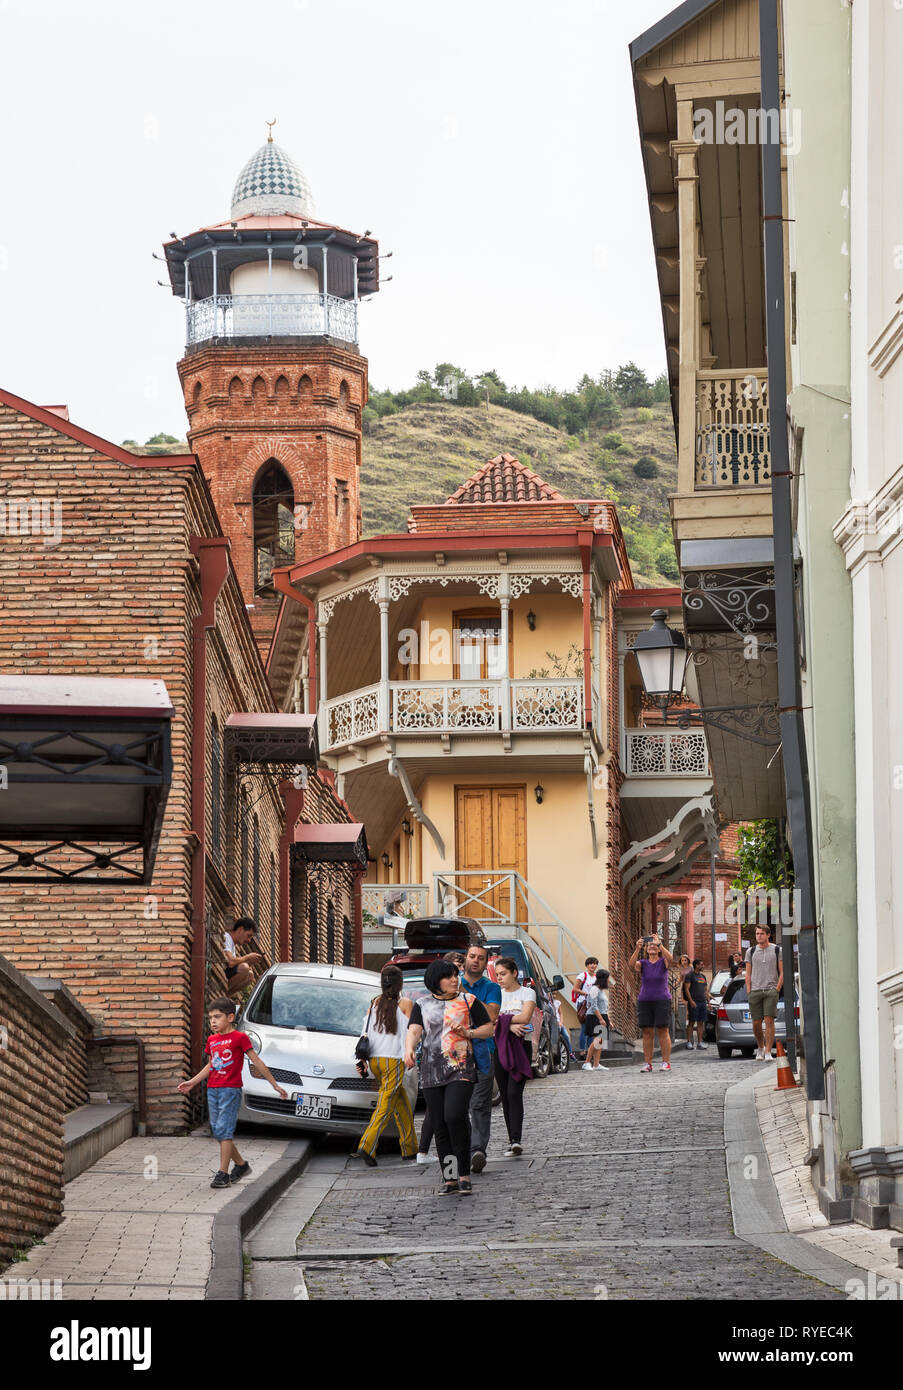 TBILISI, GEORGIA - SEPTEMBER 23, 2018: Many people, tourists and locals, walk on narrow streets of old town Tbilisi near the Juma mosque Stock Photo